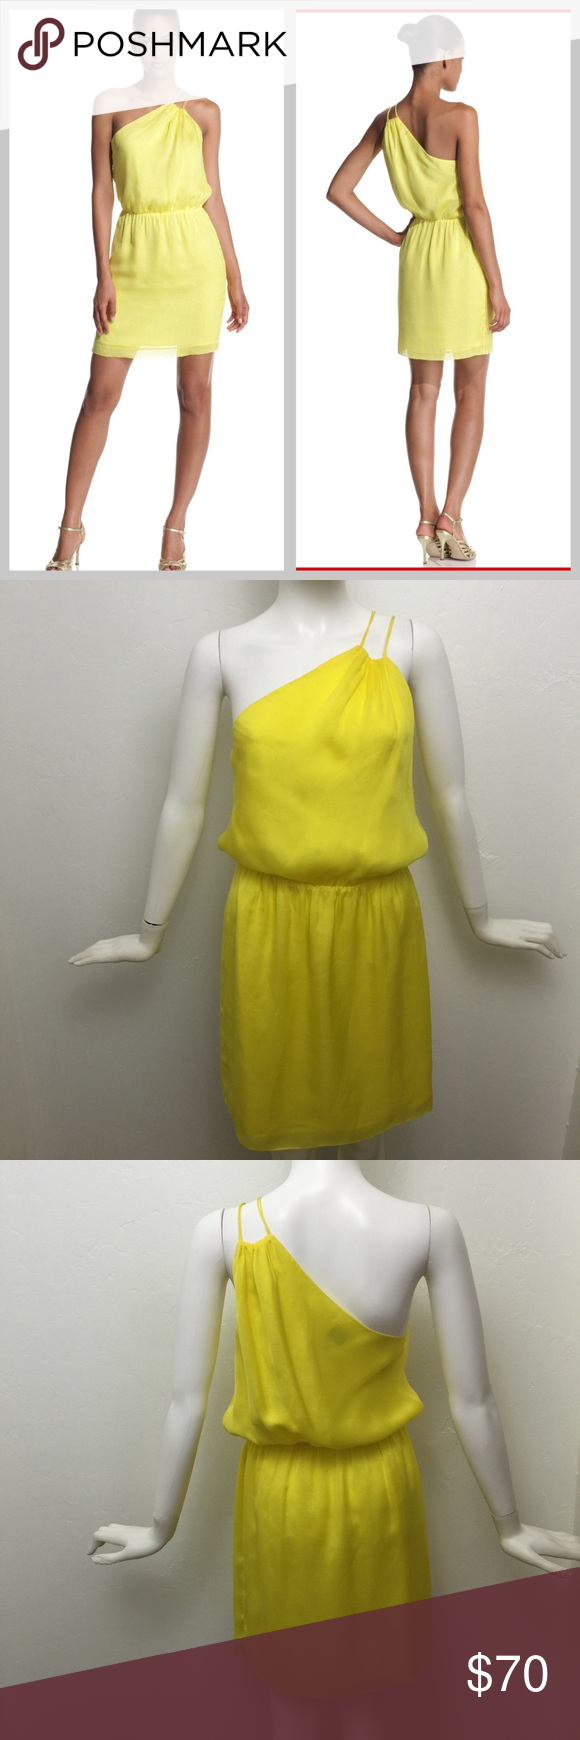 Halston Heritage bright yellow one shoulder dress Beautiful material and elegant style.  This sunny chiffon dress with an asymmetrical neckline is perfect for staying and looking cool in the summer heat. Overall, the fit is very flattering, the fabric is lightweight and the yellow color is perfect!   Descriptions:  - 100% silk  - One-shouldered neckline with double spaghetti straps - Gathering at shoulder and elasticized waist - Fully lined Halston Heritage Dresses One Shoulder